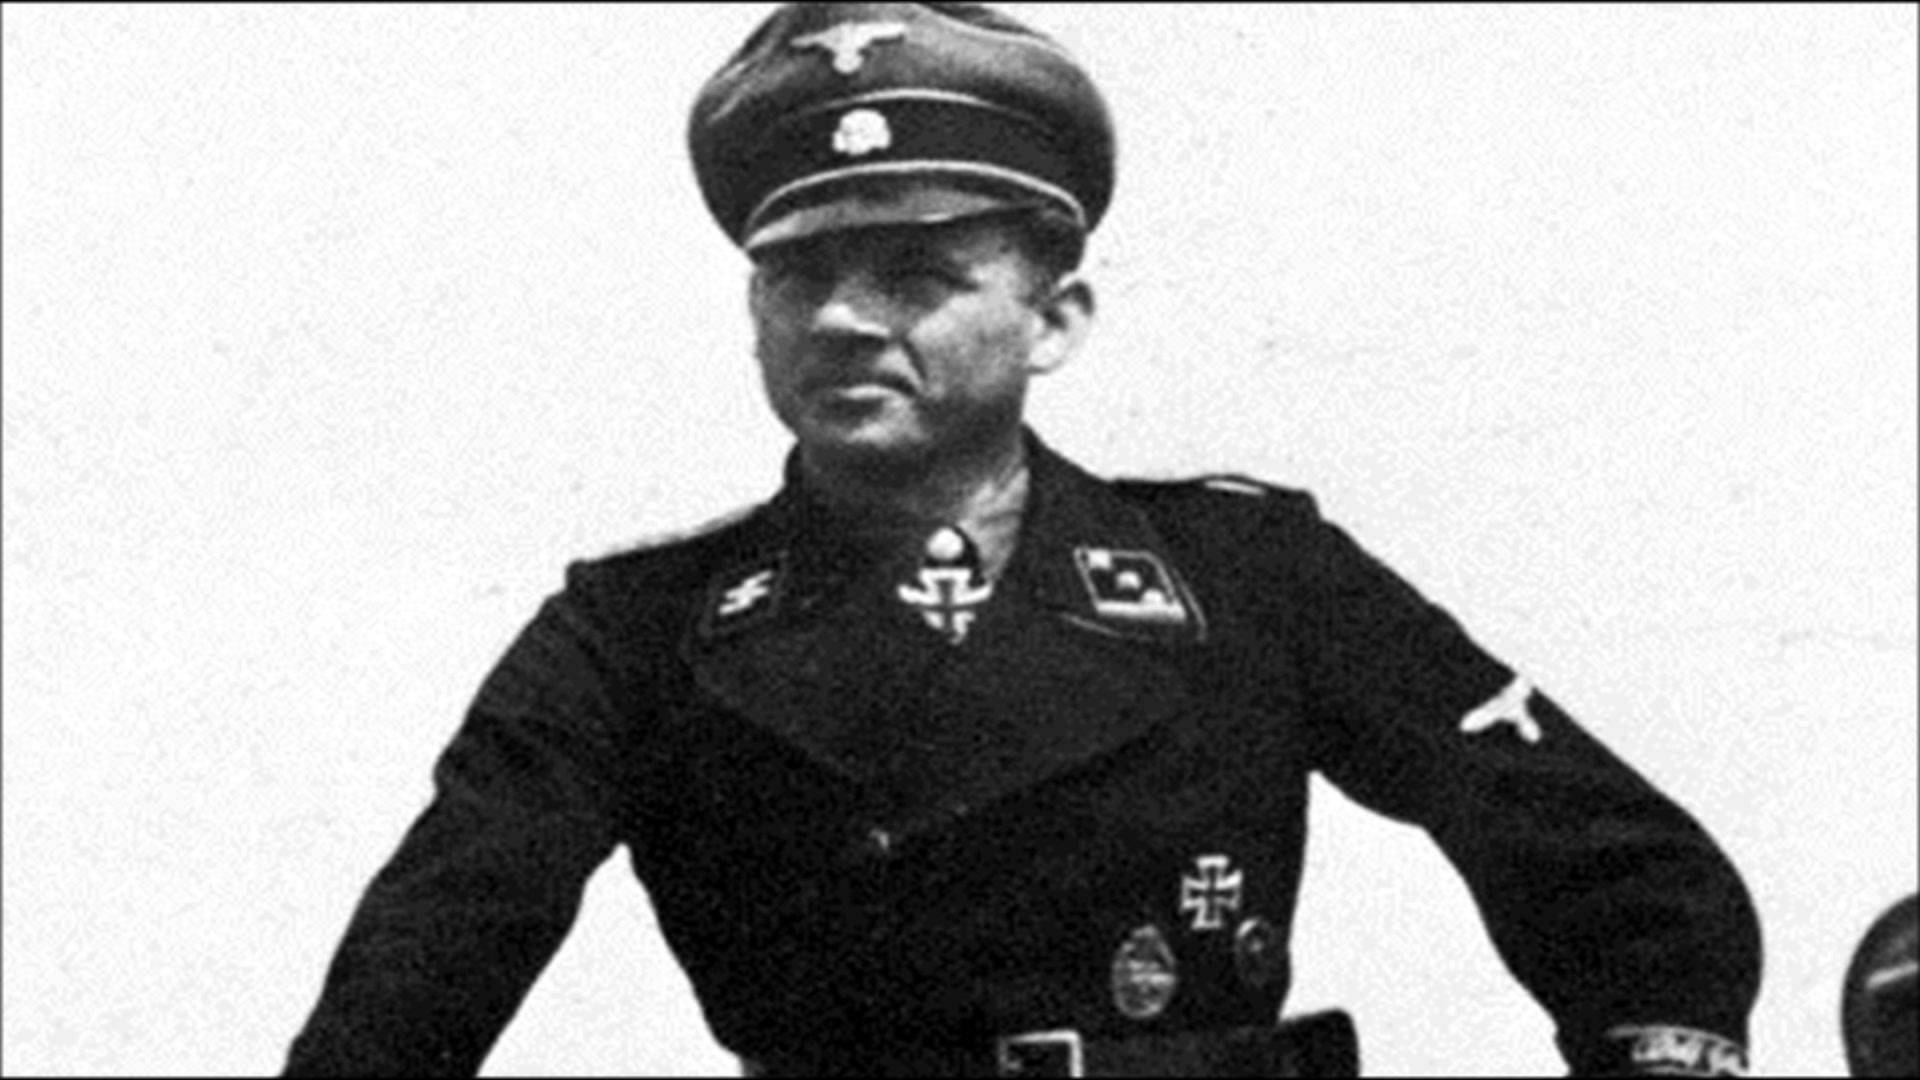 Michael Wittmann - The Death of Germany's Tiger Tank Ace